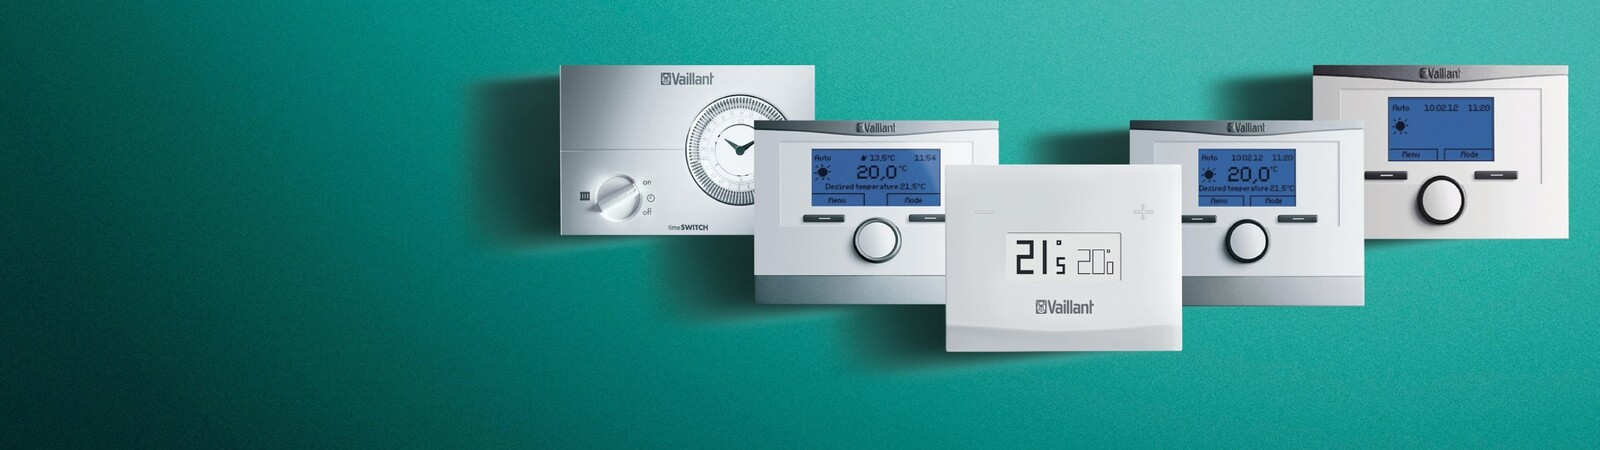 The Vaillant control range on a green background